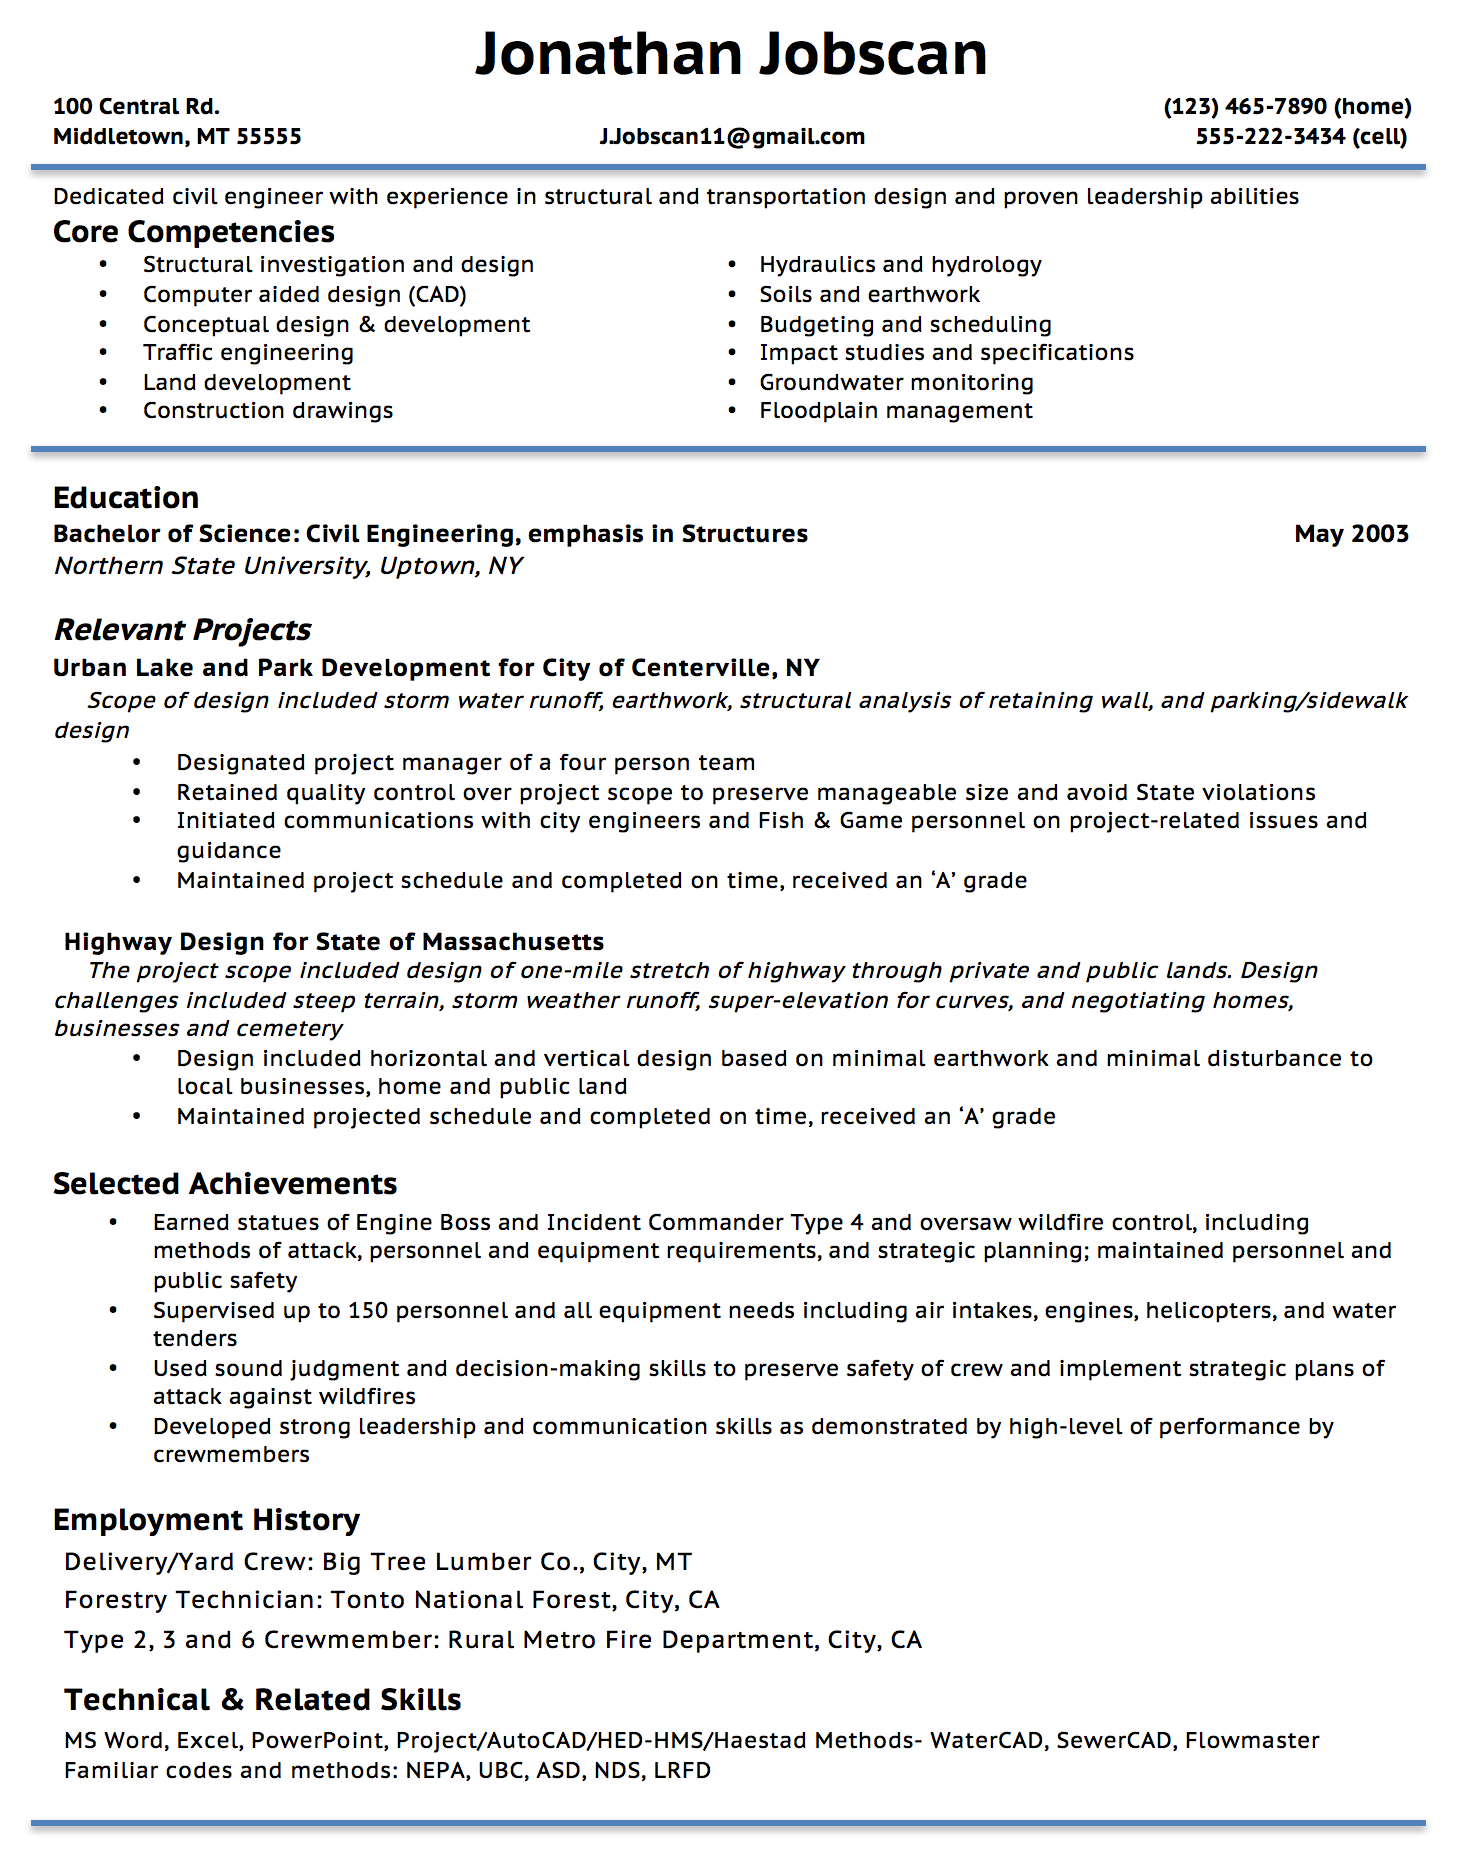 Opposenewapstandardsus  Sweet Resume Writing Guide  Jobscan With Exquisite Example Of A Functional Resume Format With Divine Volunteer Activities On Resume Also Resume Writers Chicago In Addition Marketing Manager Resumes And Resume For Nanny Position As Well As Auto Tech Resume Additionally Resume My Career From Jobscanco With Opposenewapstandardsus  Exquisite Resume Writing Guide  Jobscan With Divine Example Of A Functional Resume Format And Sweet Volunteer Activities On Resume Also Resume Writers Chicago In Addition Marketing Manager Resumes From Jobscanco